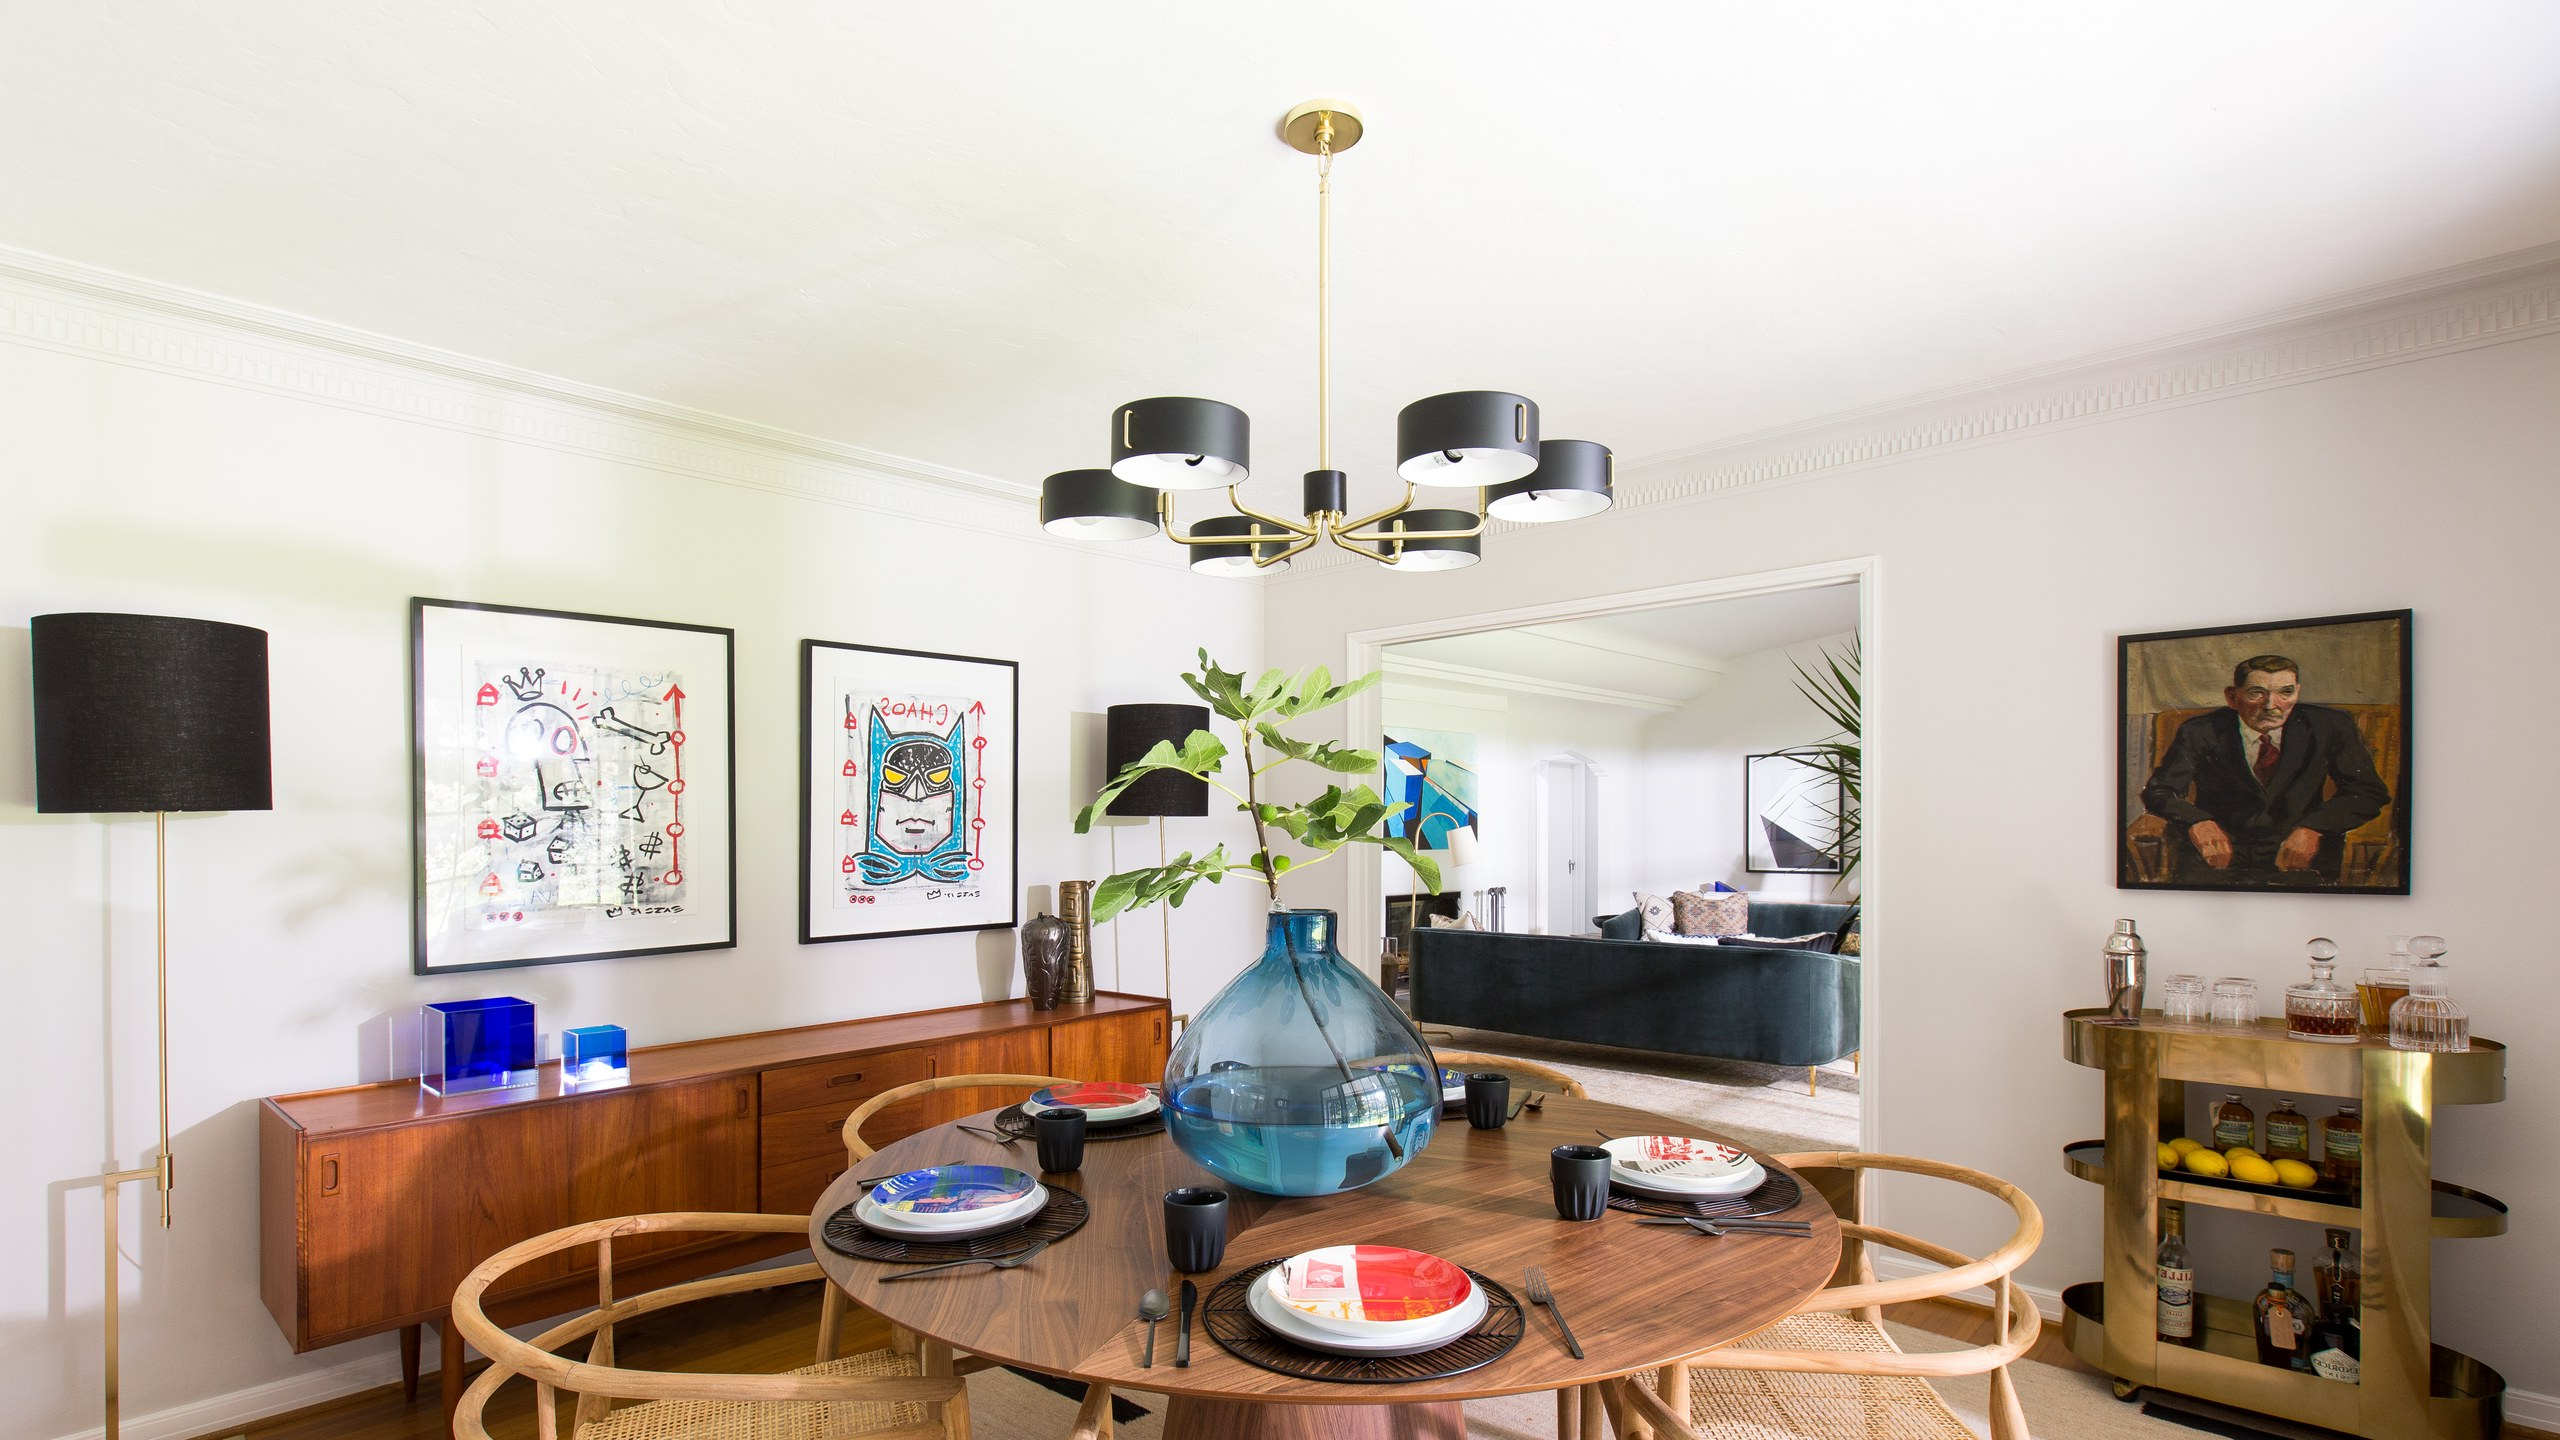 Most Recent Rustic Mid Century Modern 6 Seating Dining Tables In White And Natural Wood In 8 Midcentury Modern Decor & Style Ideas: Tips For Interior (View 14 of 30)